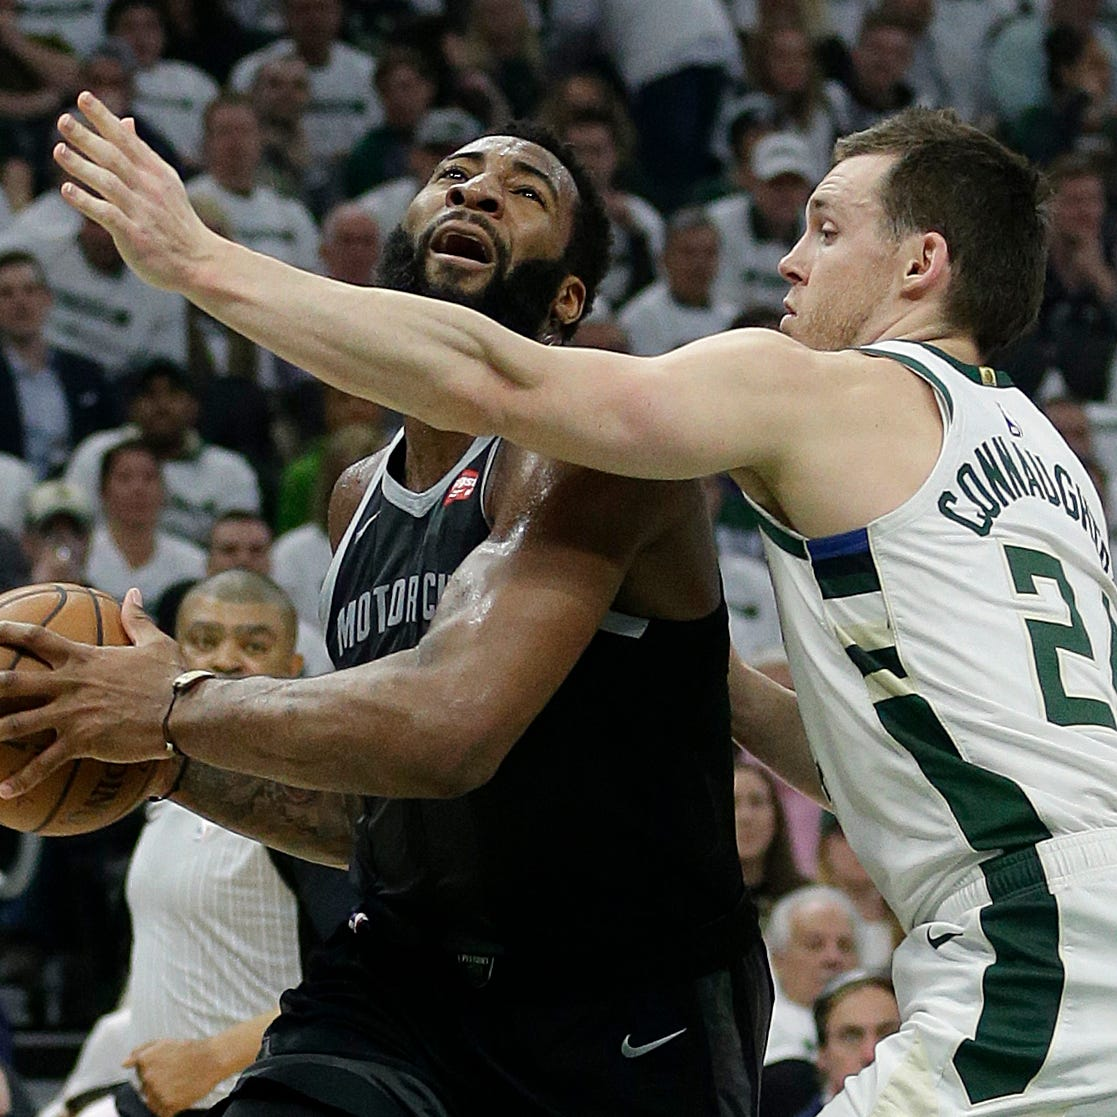 Pistons' Andre Drummond ejected for shoving Bucks' Giannis Antetokounmpo